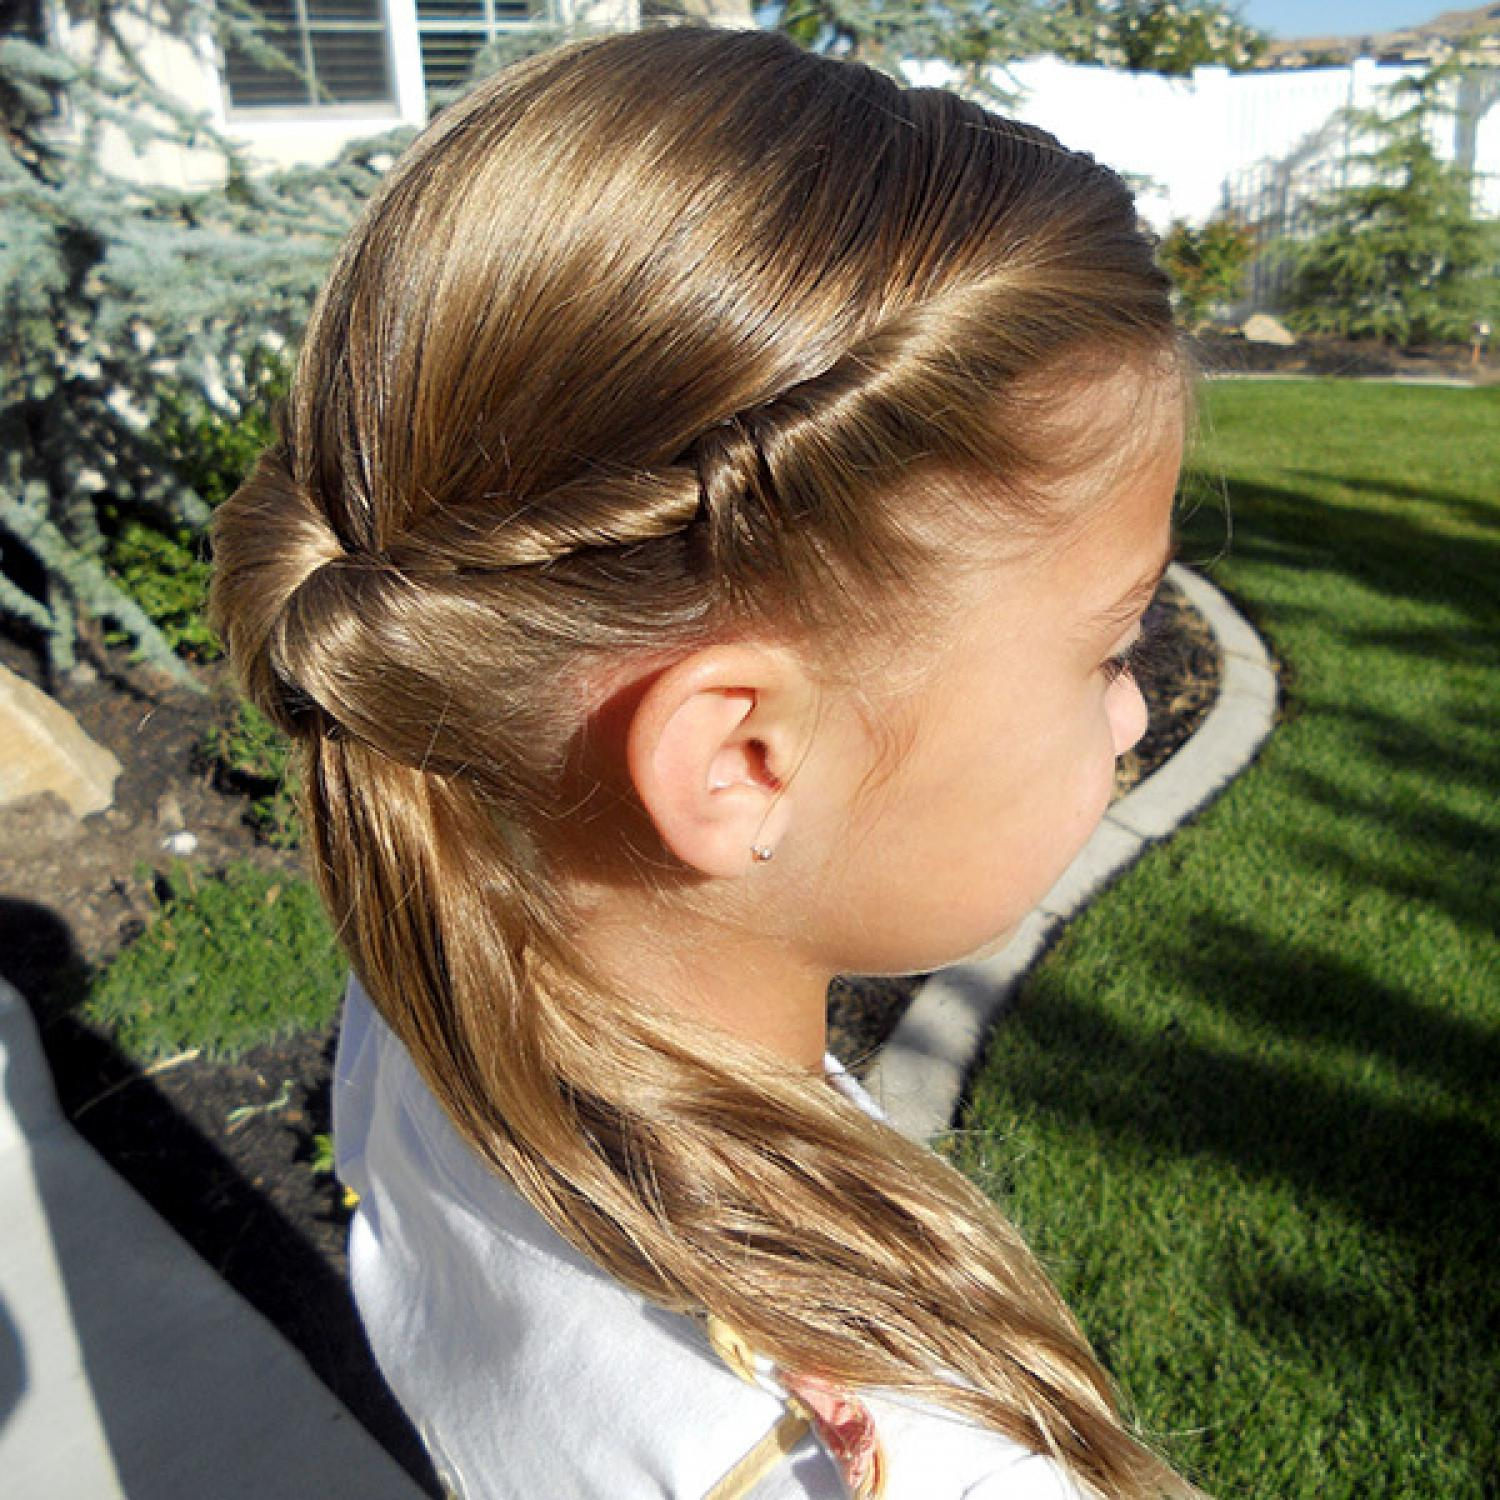 school hair style 10 back to school hair hacks for busy mornings parenting 5446